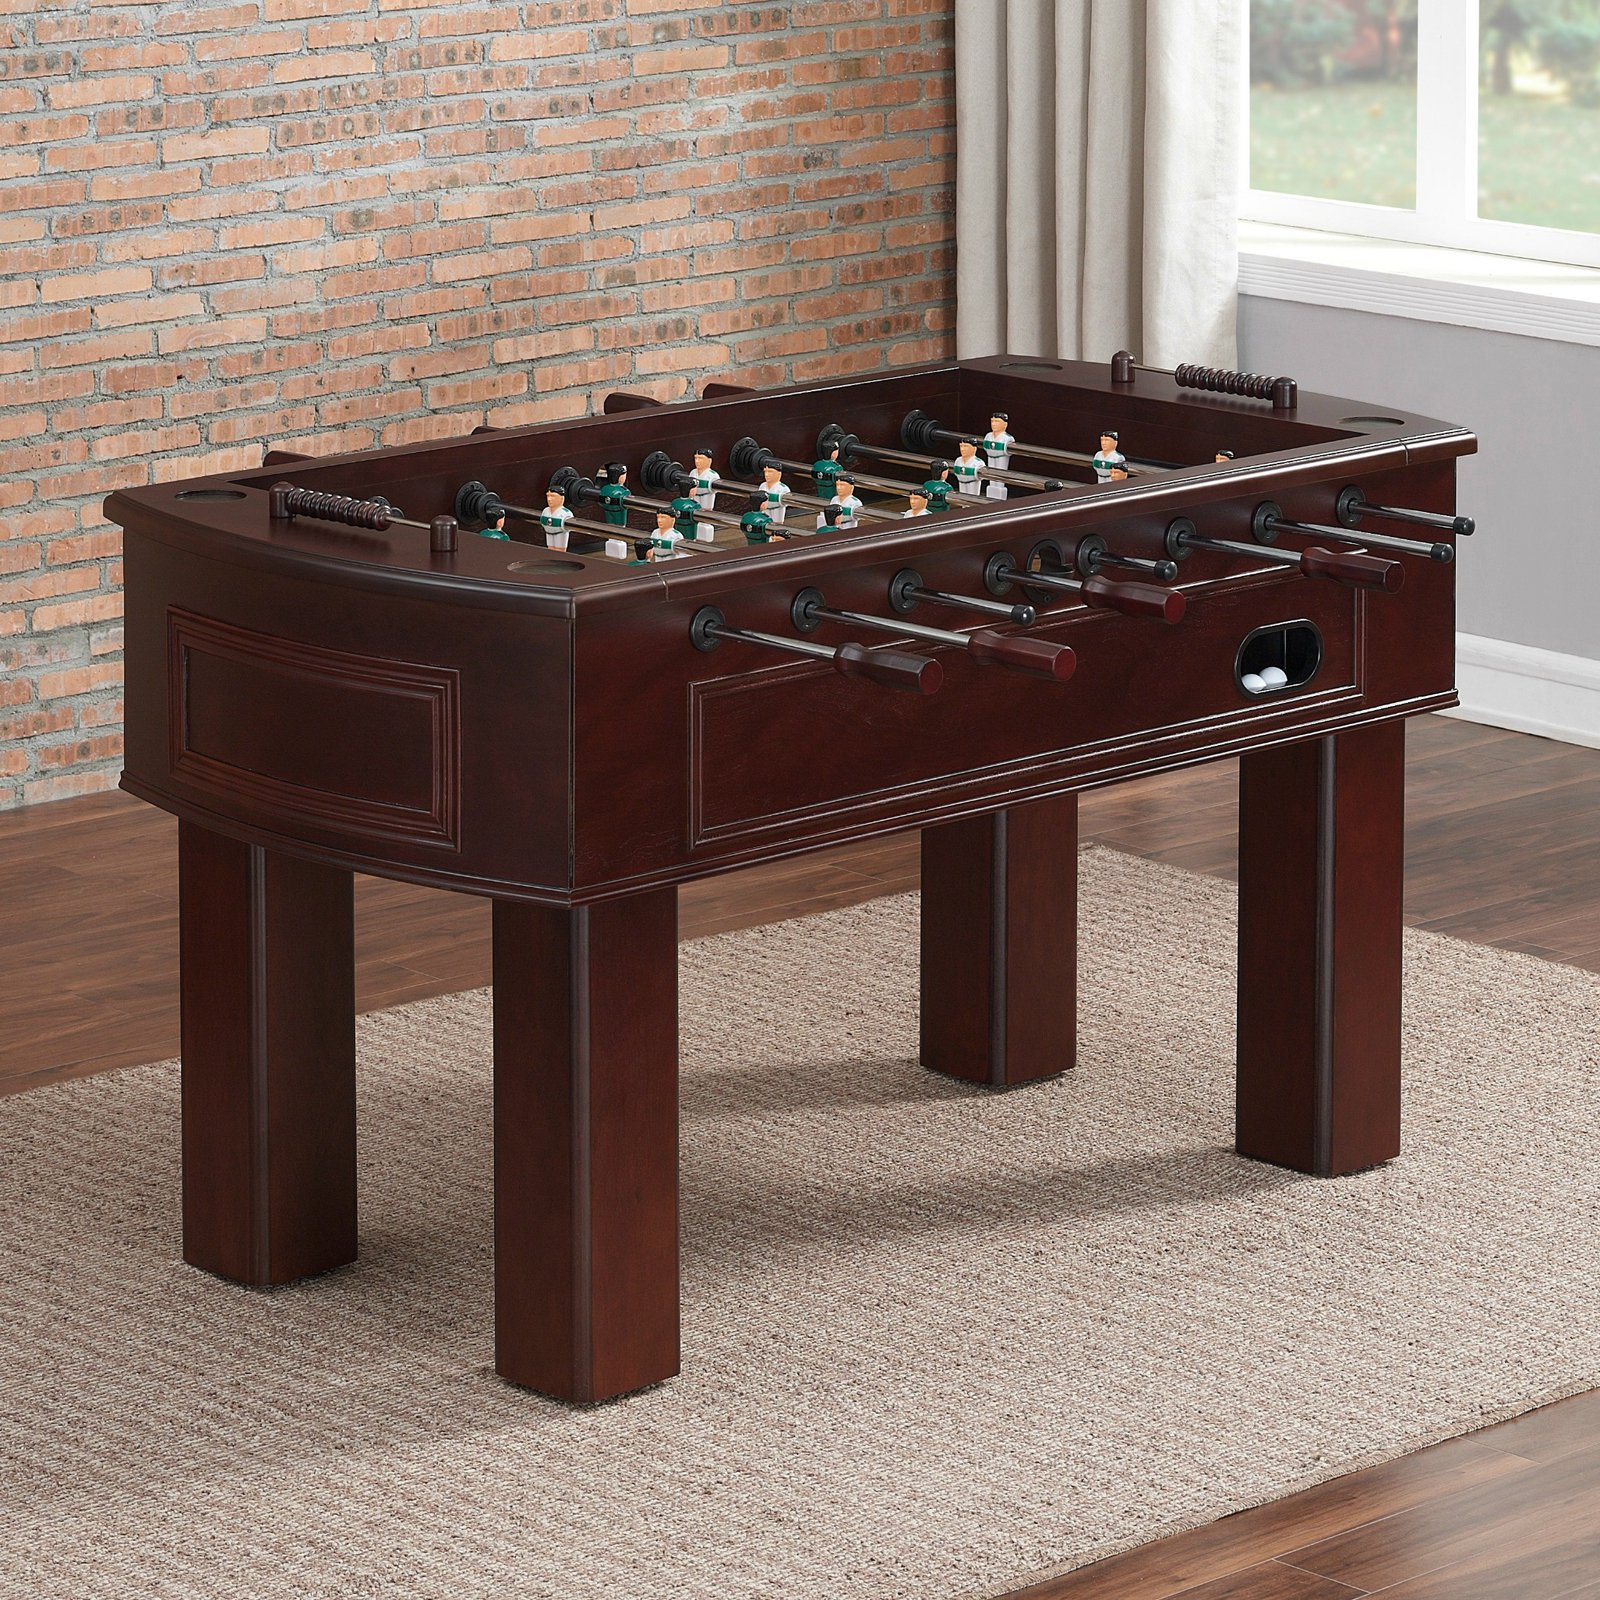 American Heritage Carlyle 62 in. Foosball Table by American Heritage Billiards